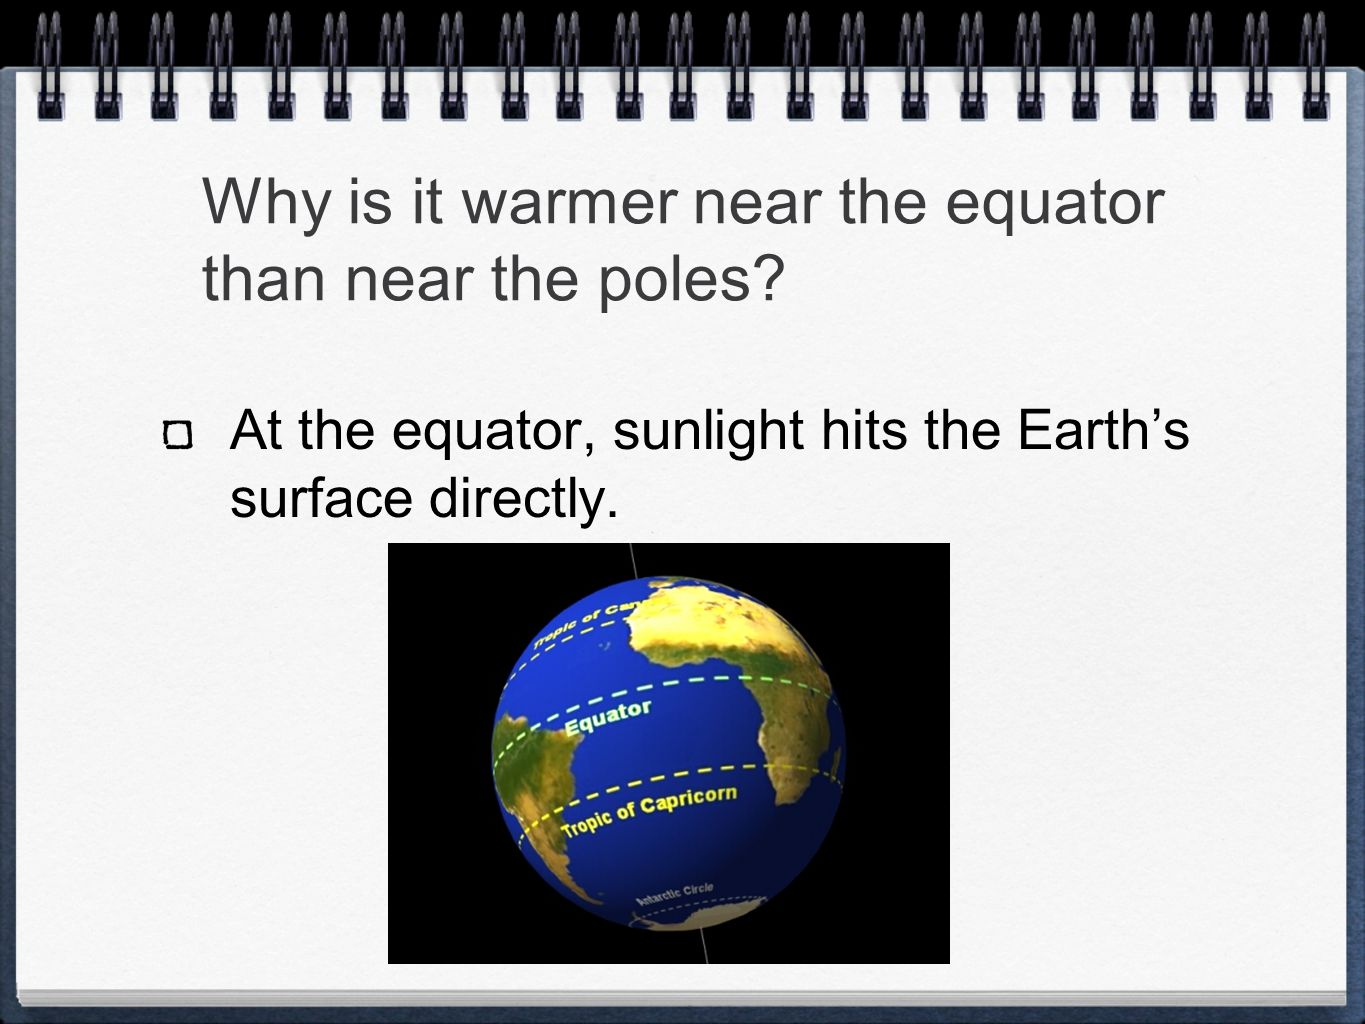 Why is it warmer near the equator than near the poles